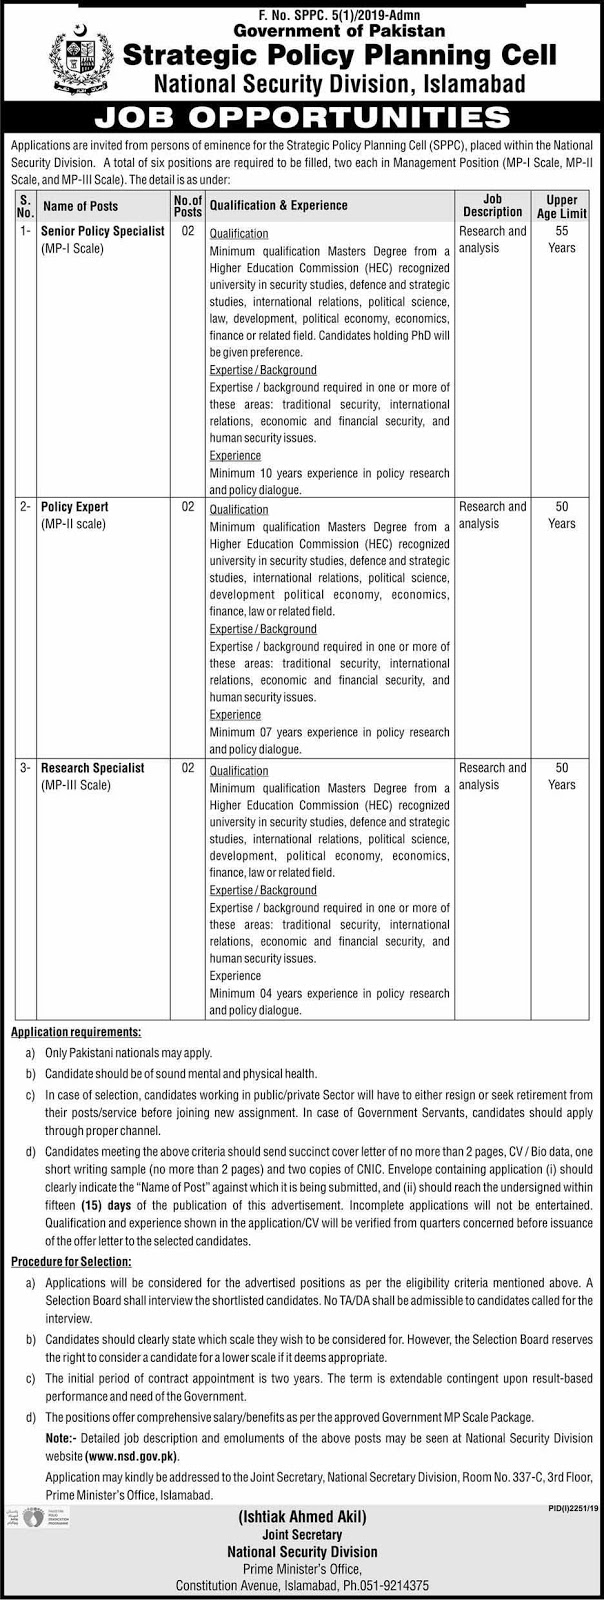 Govt Jobs in Strategic Policy Planning Cell Islamabad 2019